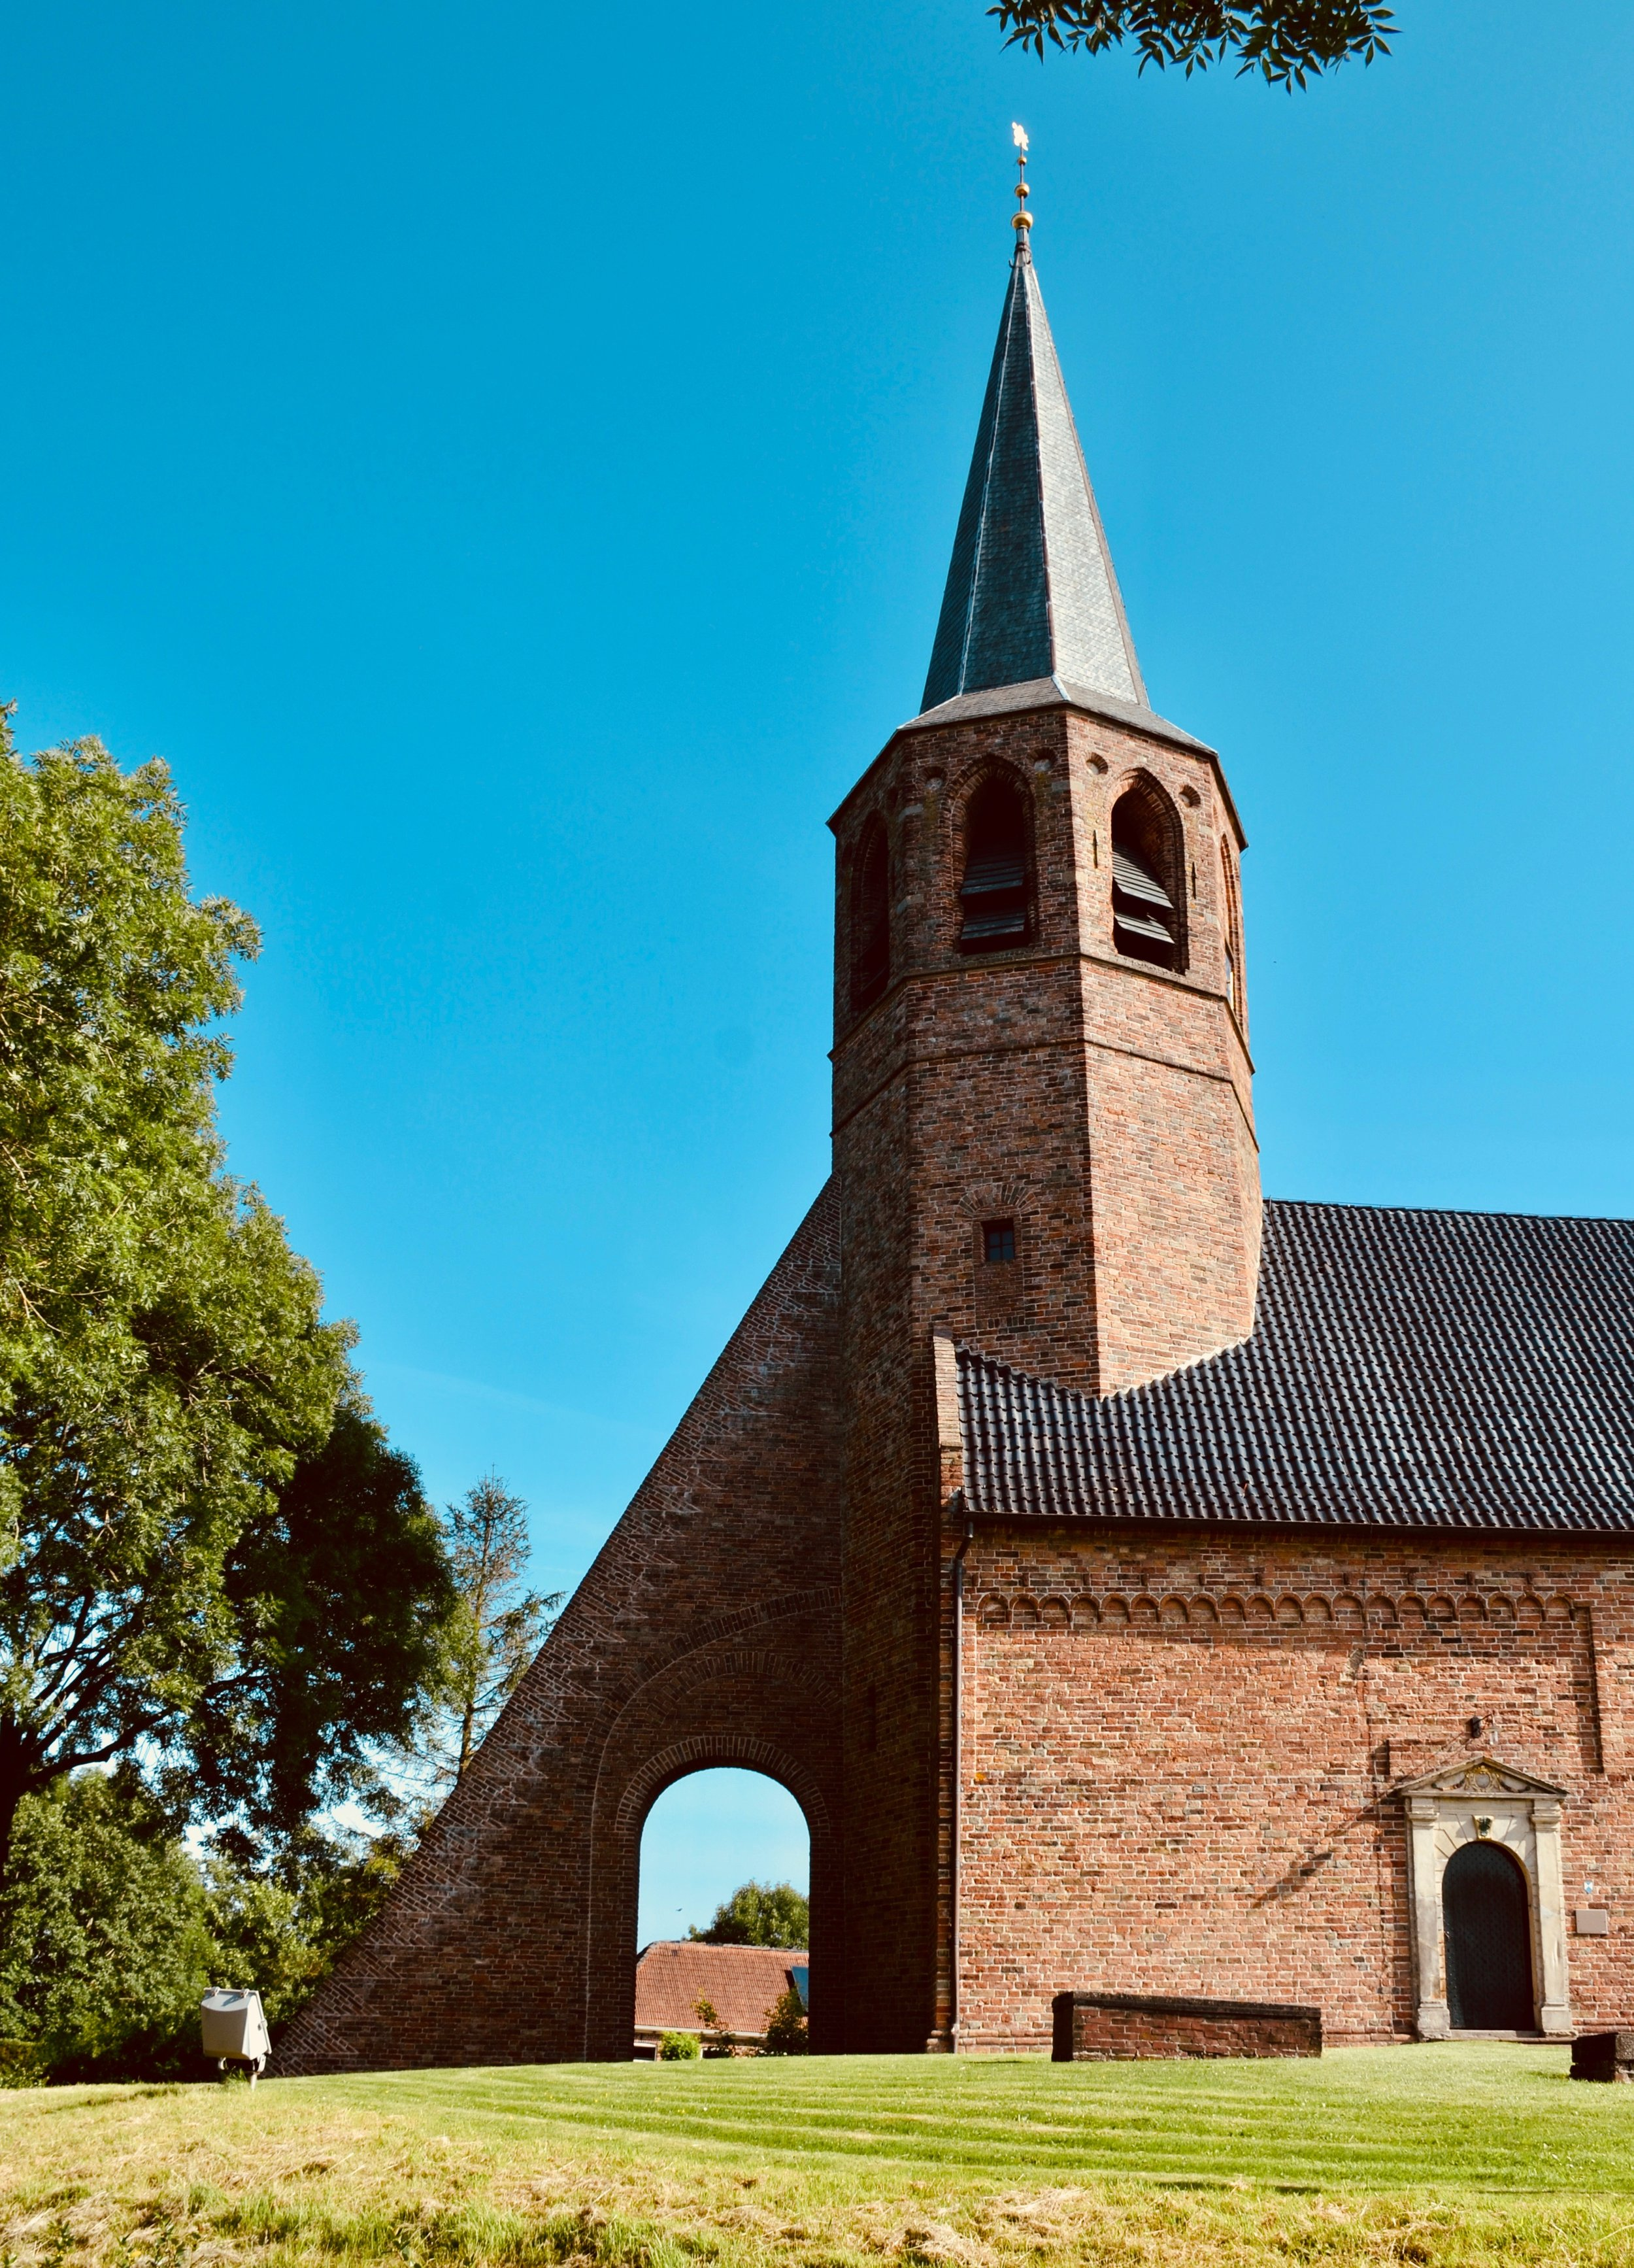 The village church in Kantens, Holland.